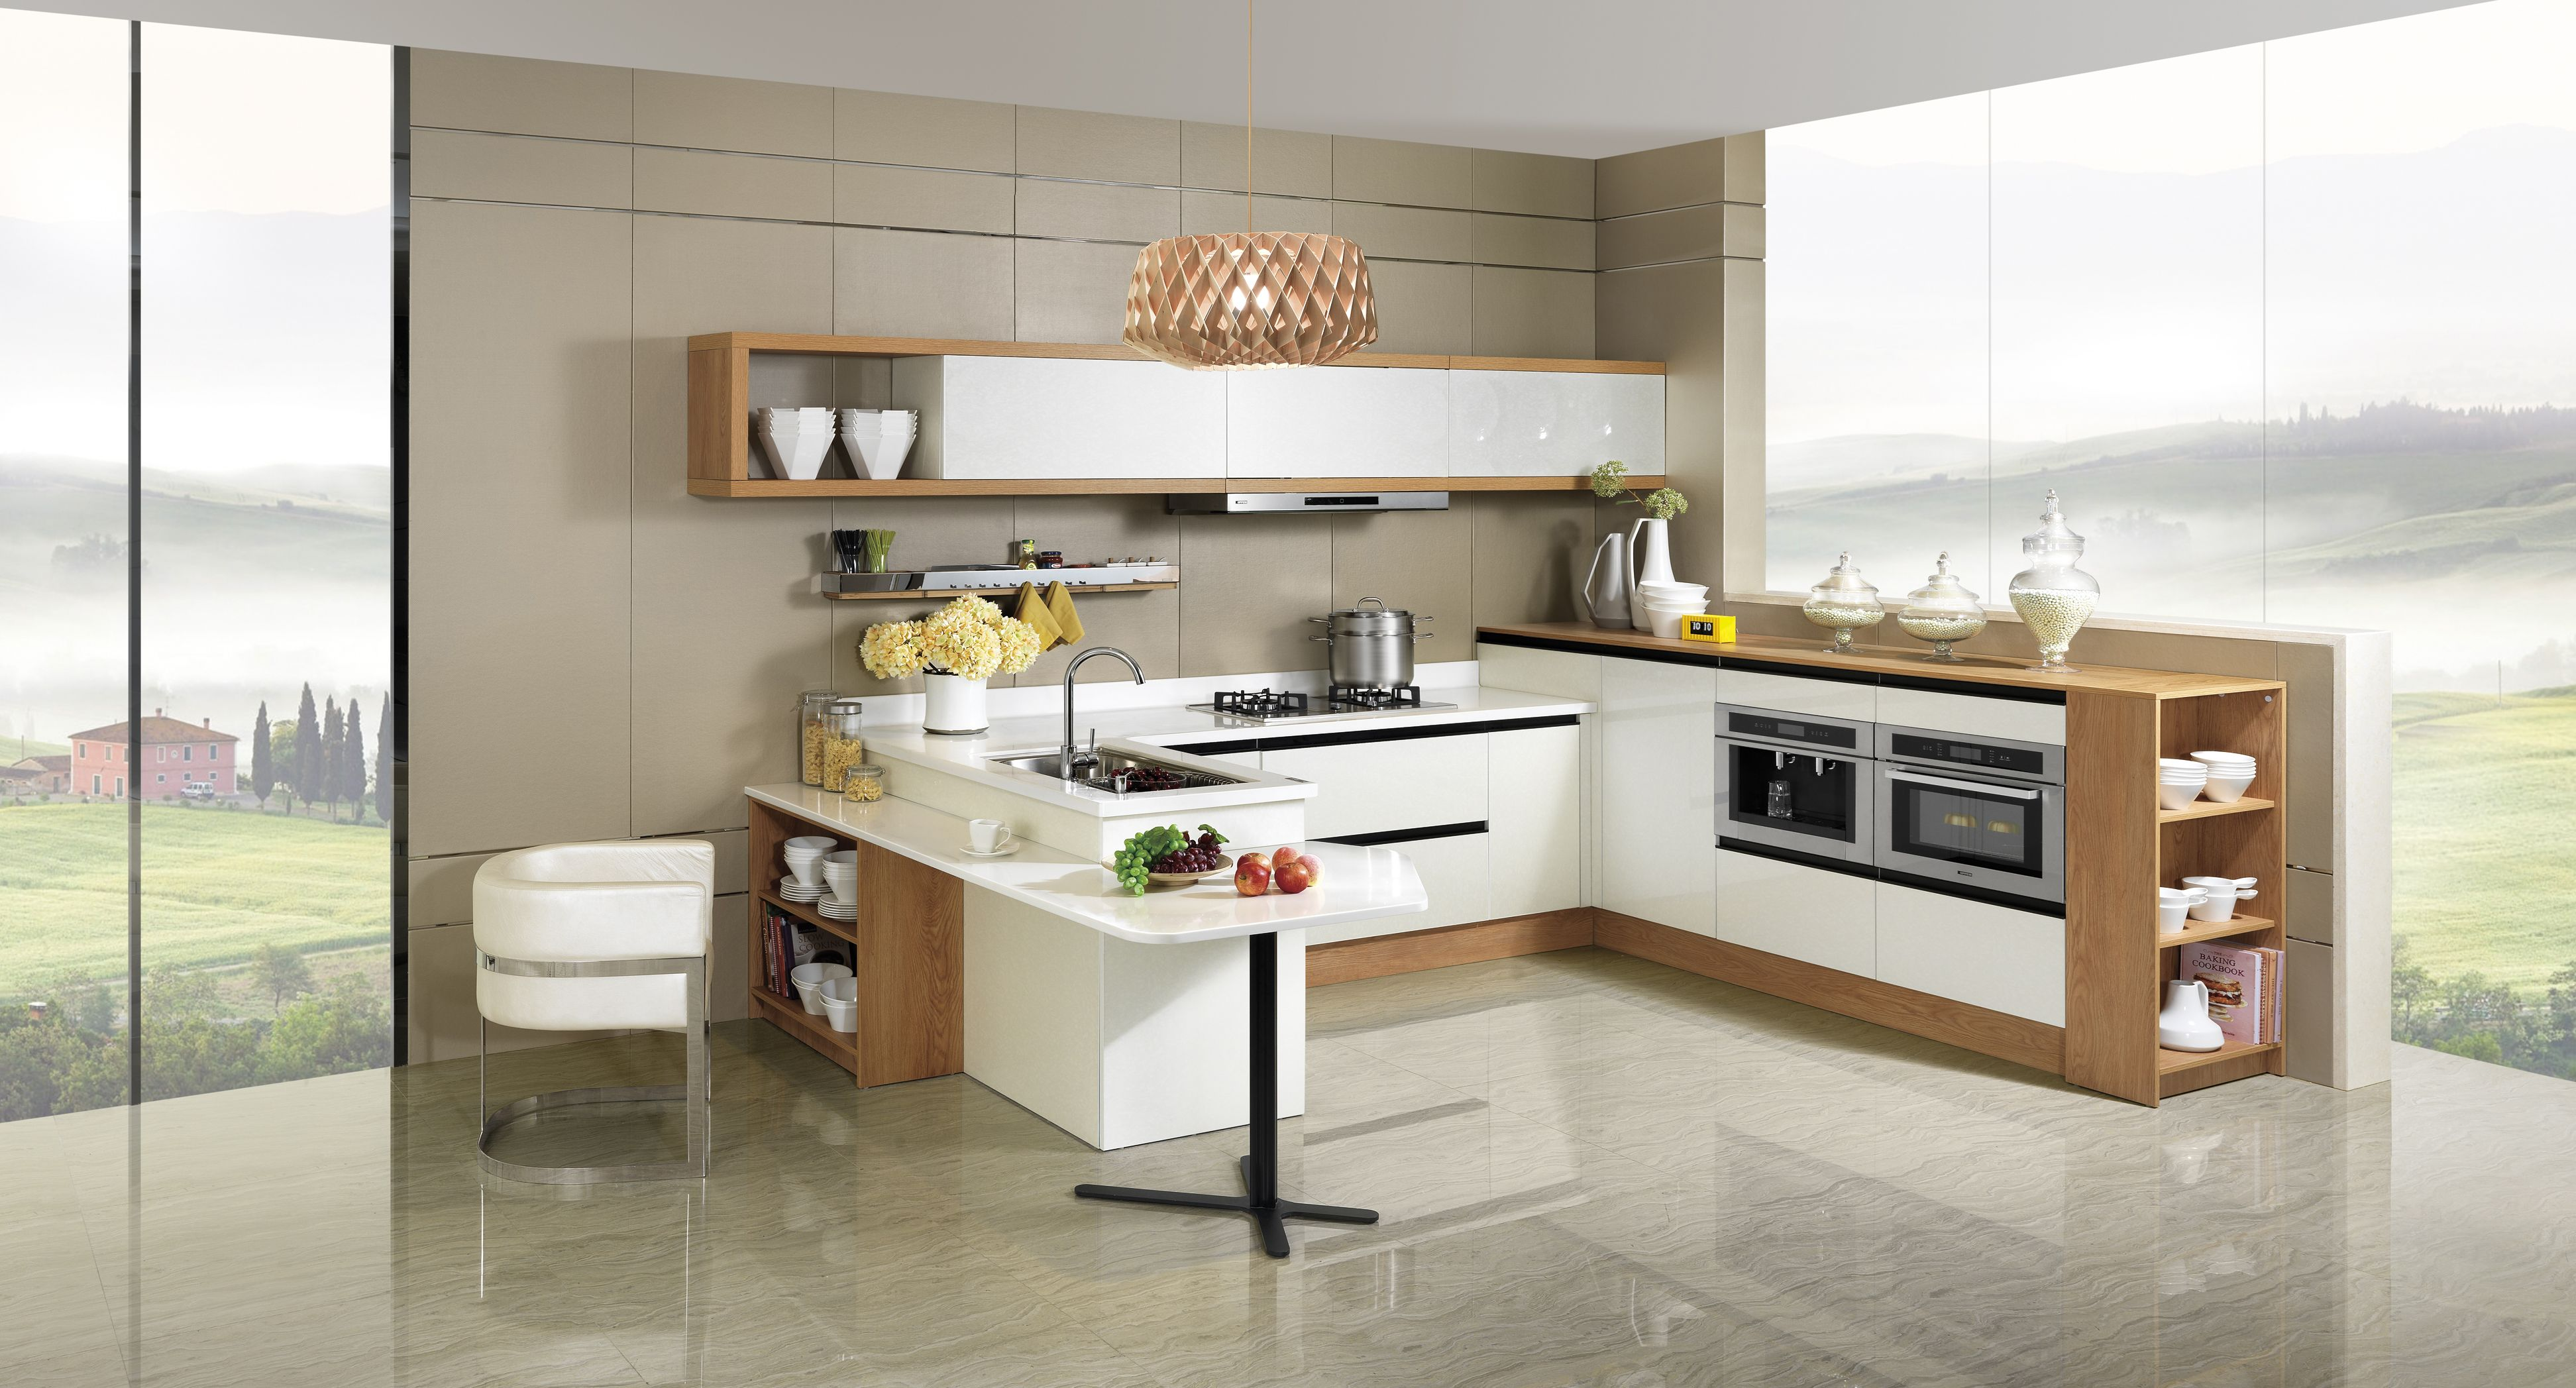 2014 New Arrival OPPEIN PVC Laminate Kitchen Cabinet In Guangzhou OP14 054